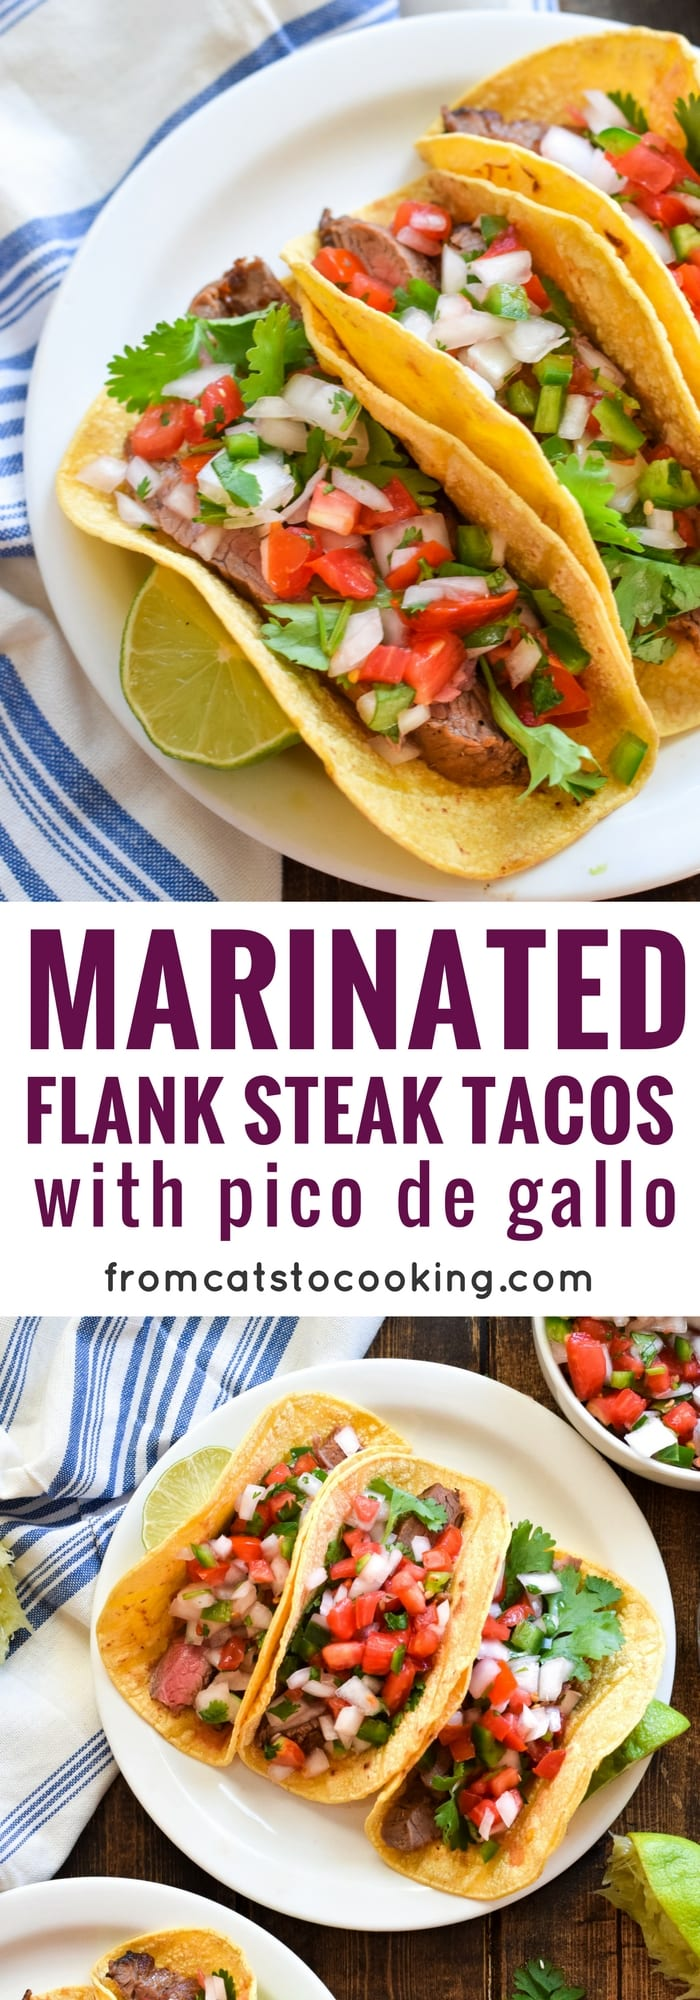 LIKE THESE MARINATED FLANK STEAK TACOS WITH PICO DE GALLO? L..